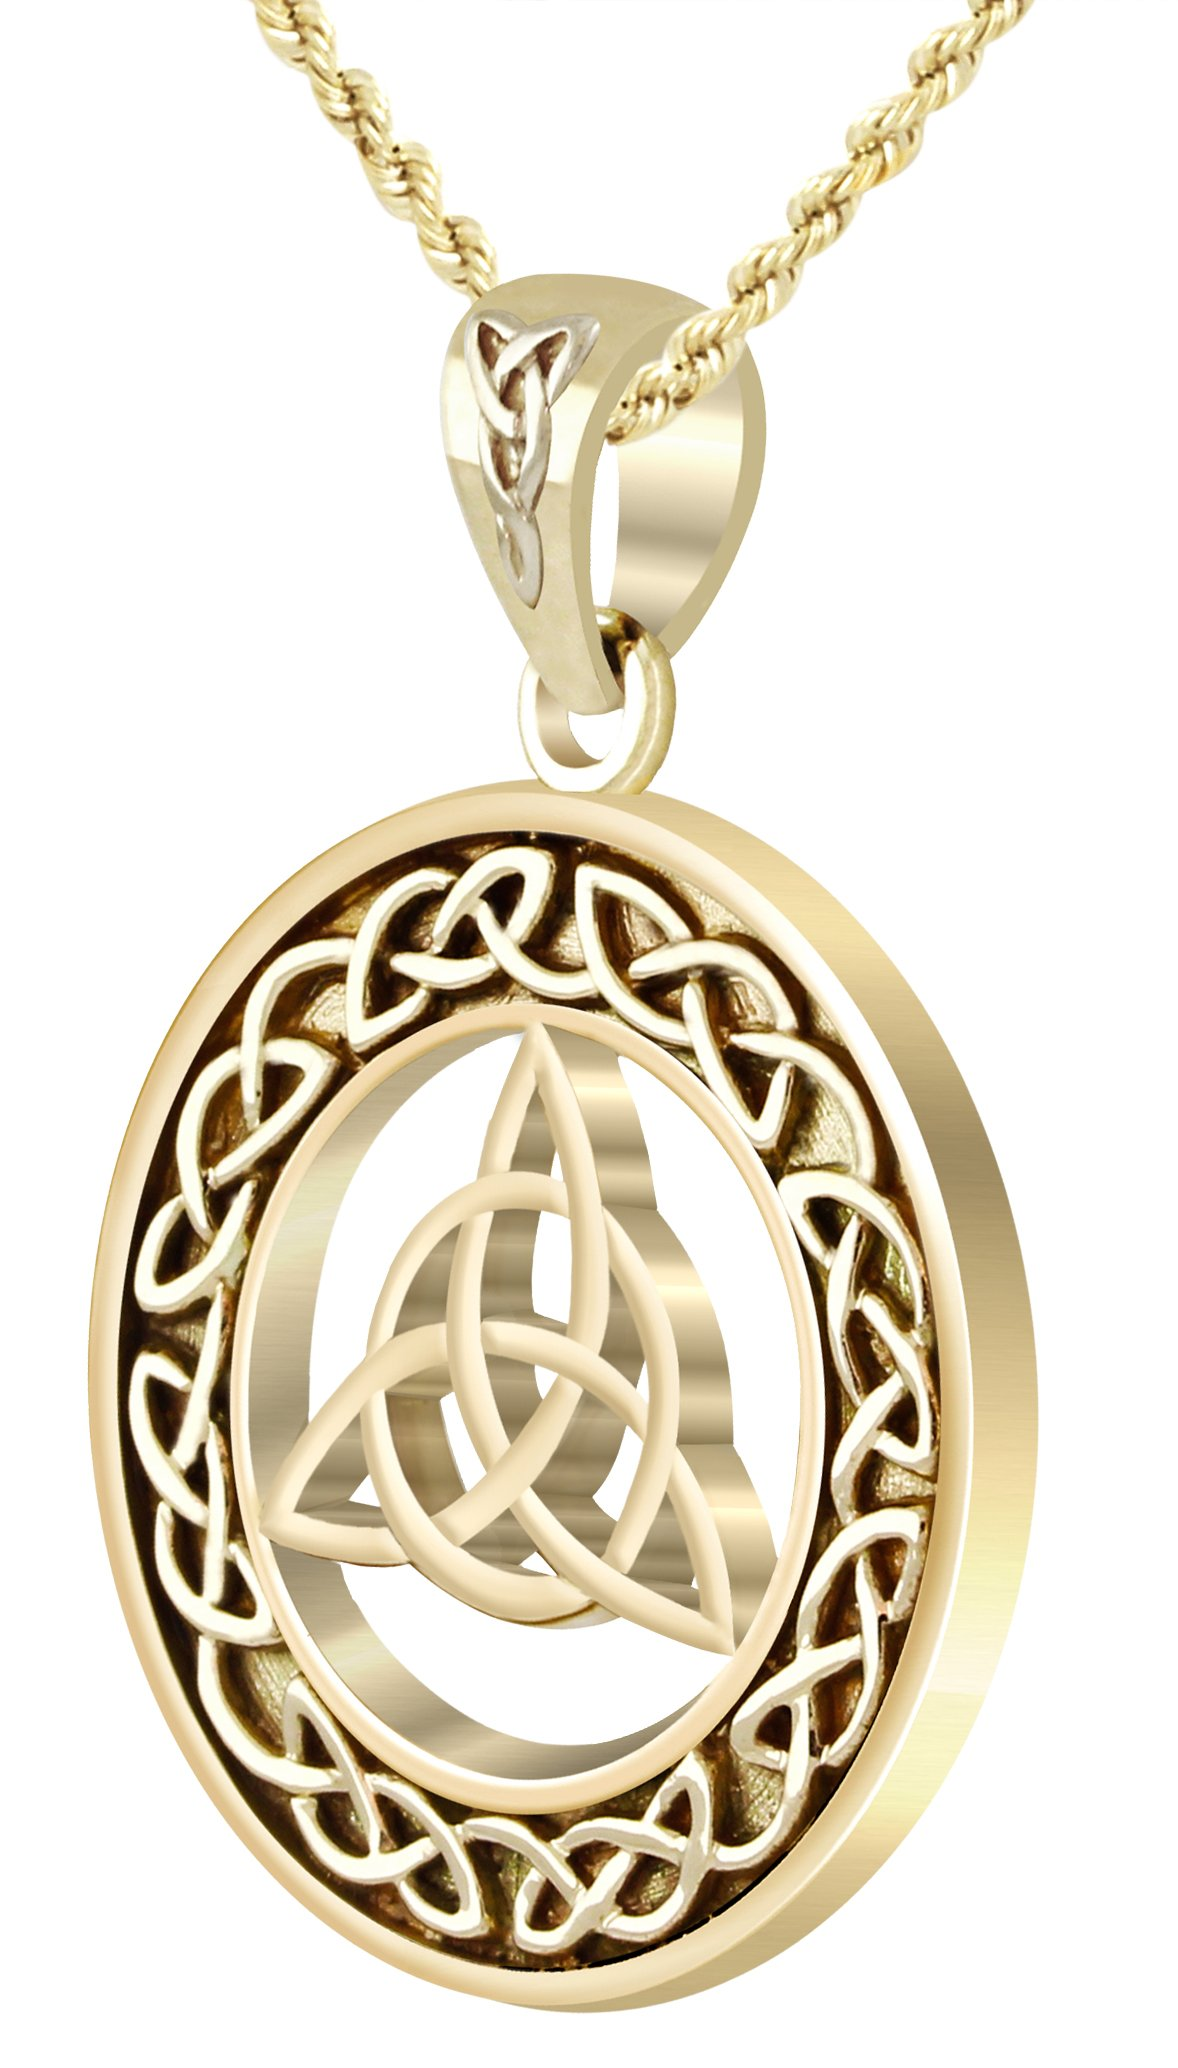 New Solid 14k Yellow Gold Irish Celtic Trinity Love Knot Pendant, 1.0mm Box Necklace, 16in